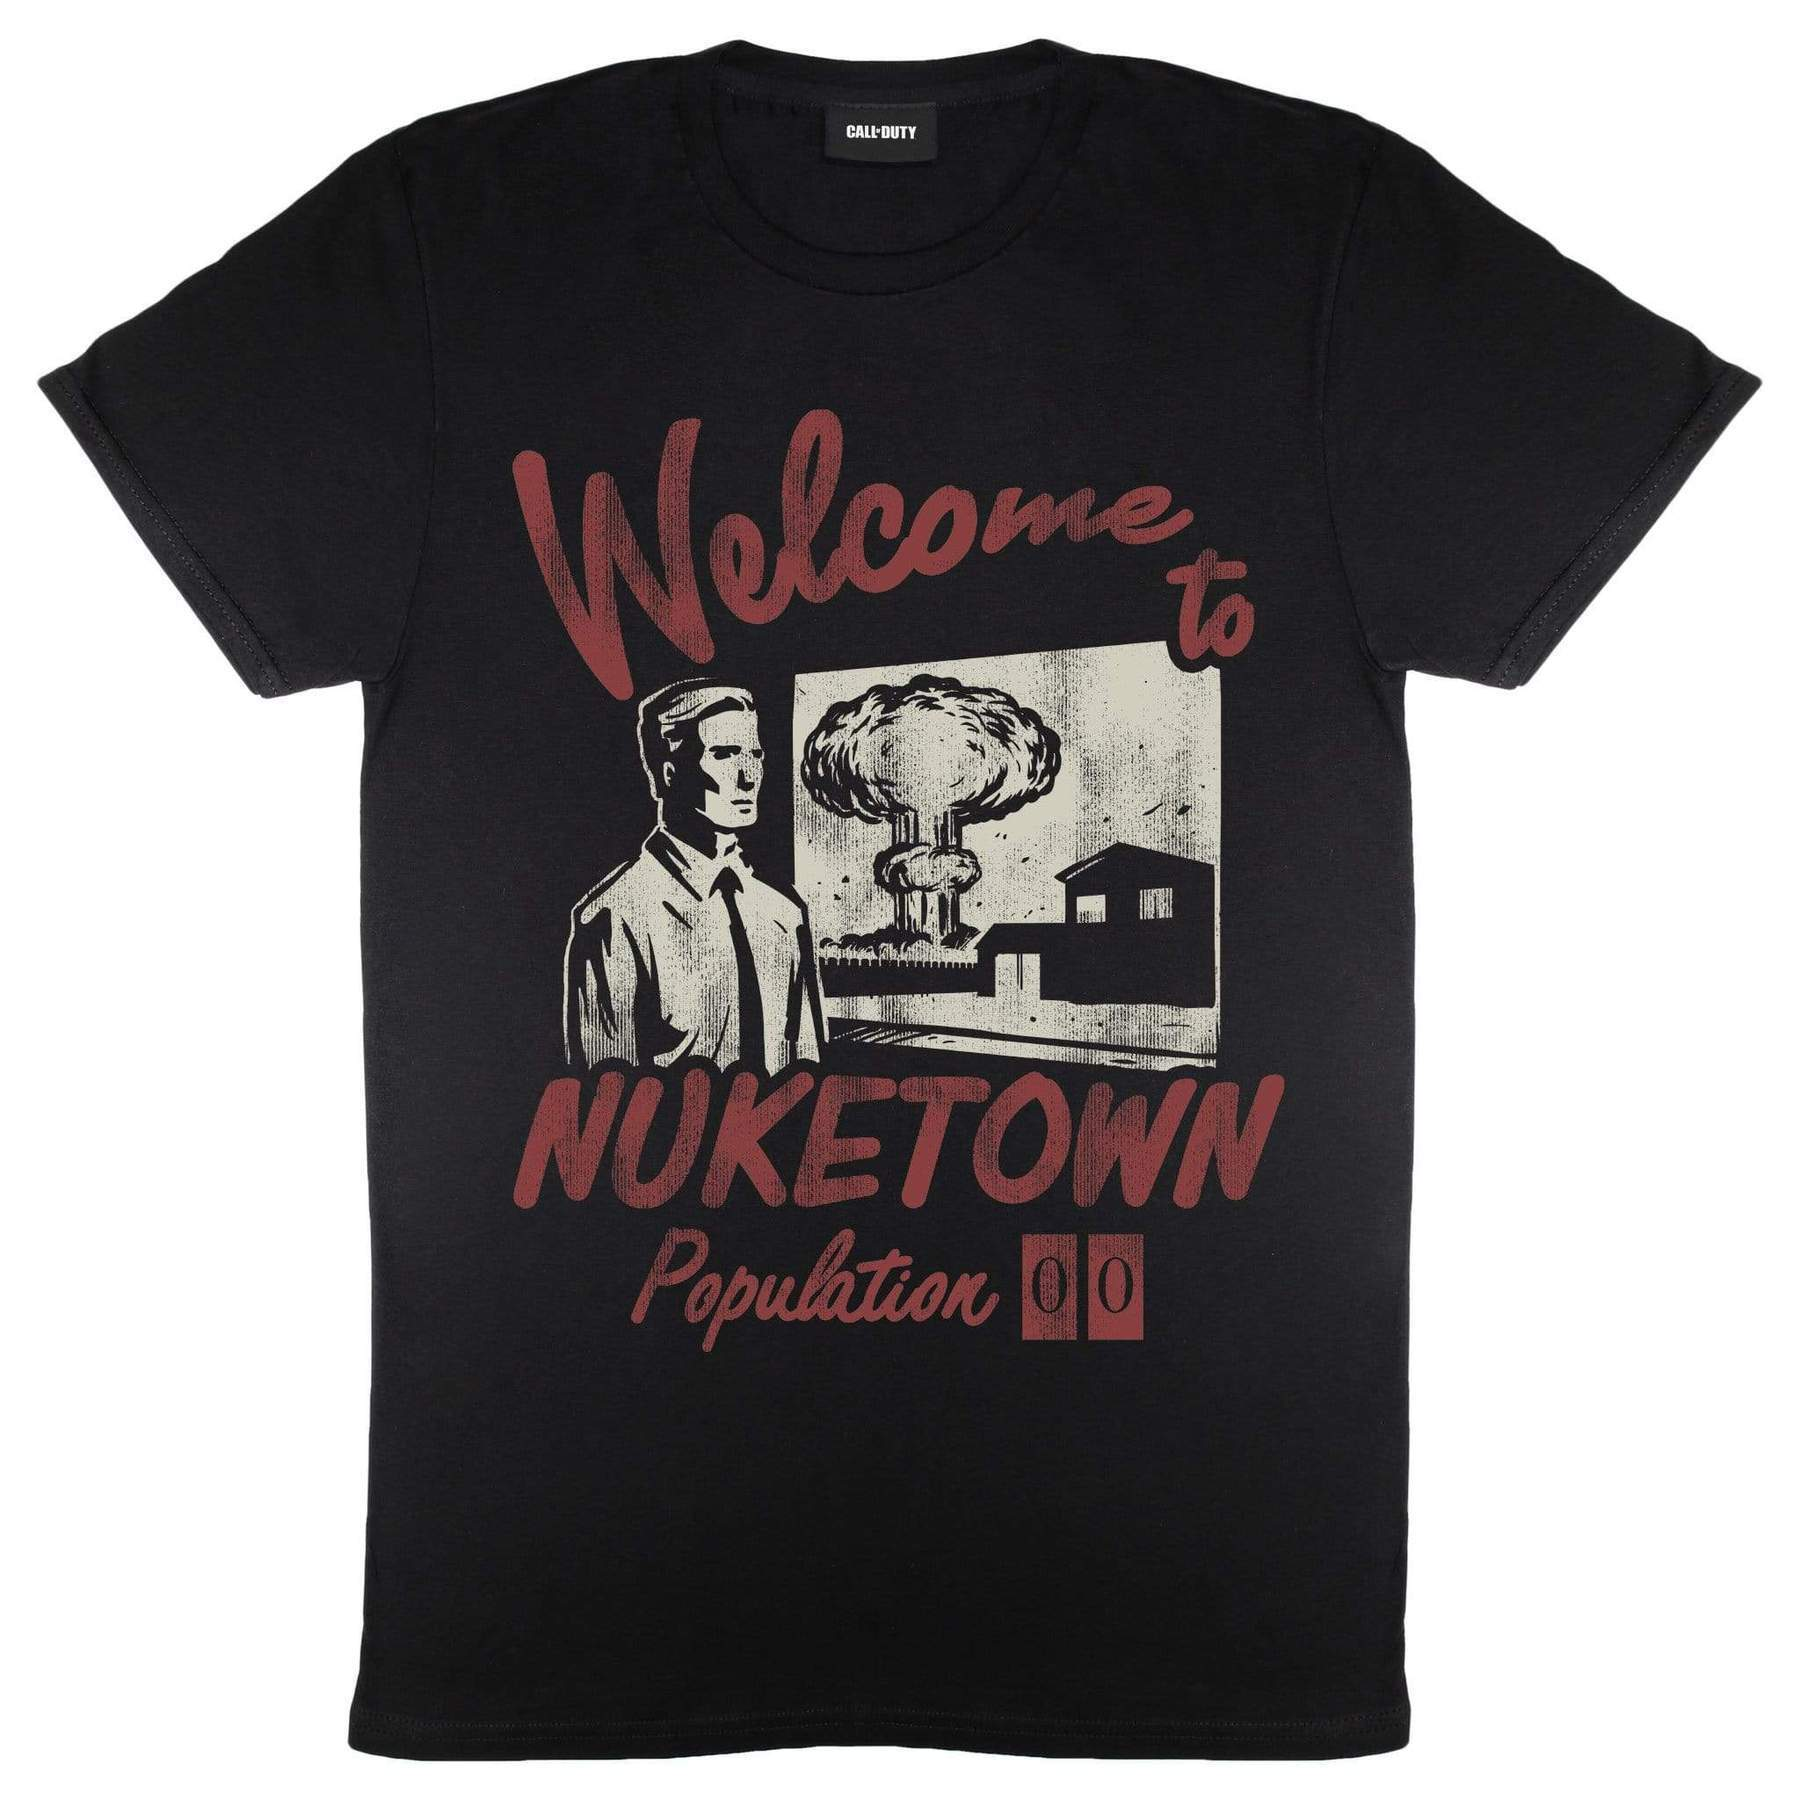 Call Of Duty Mens Welcome To Nuketown Cold War Zombies T-Shirt (XL) (Black)